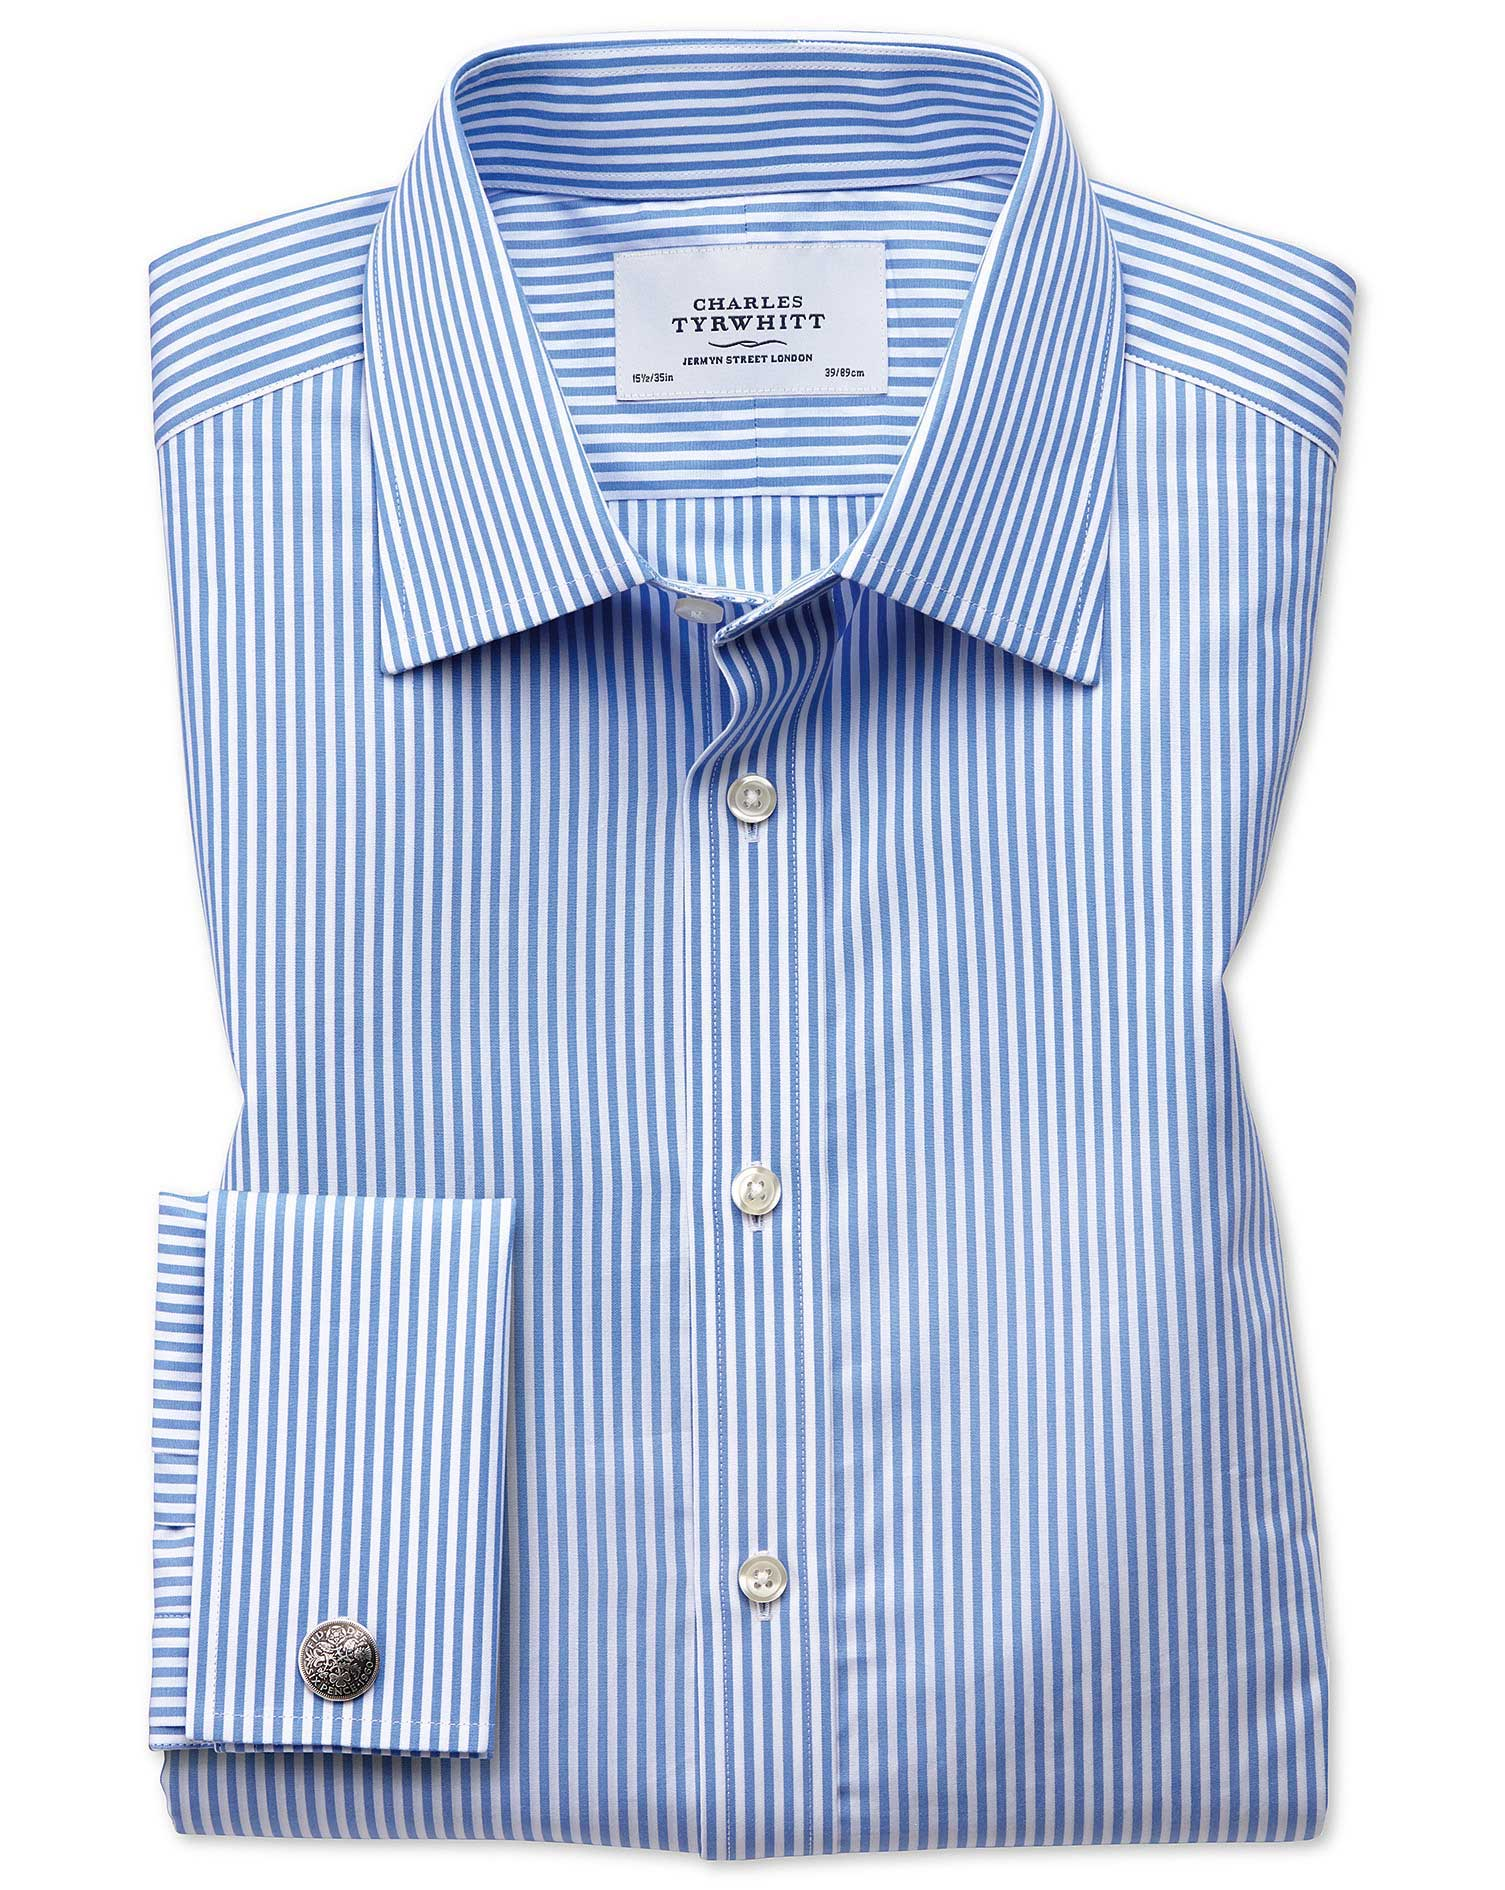 Classic Fit Bengal Stripe Sky Blue Cotton Formal Shirt Single Cuff Size 17/38 by Charles Tyrwhitt